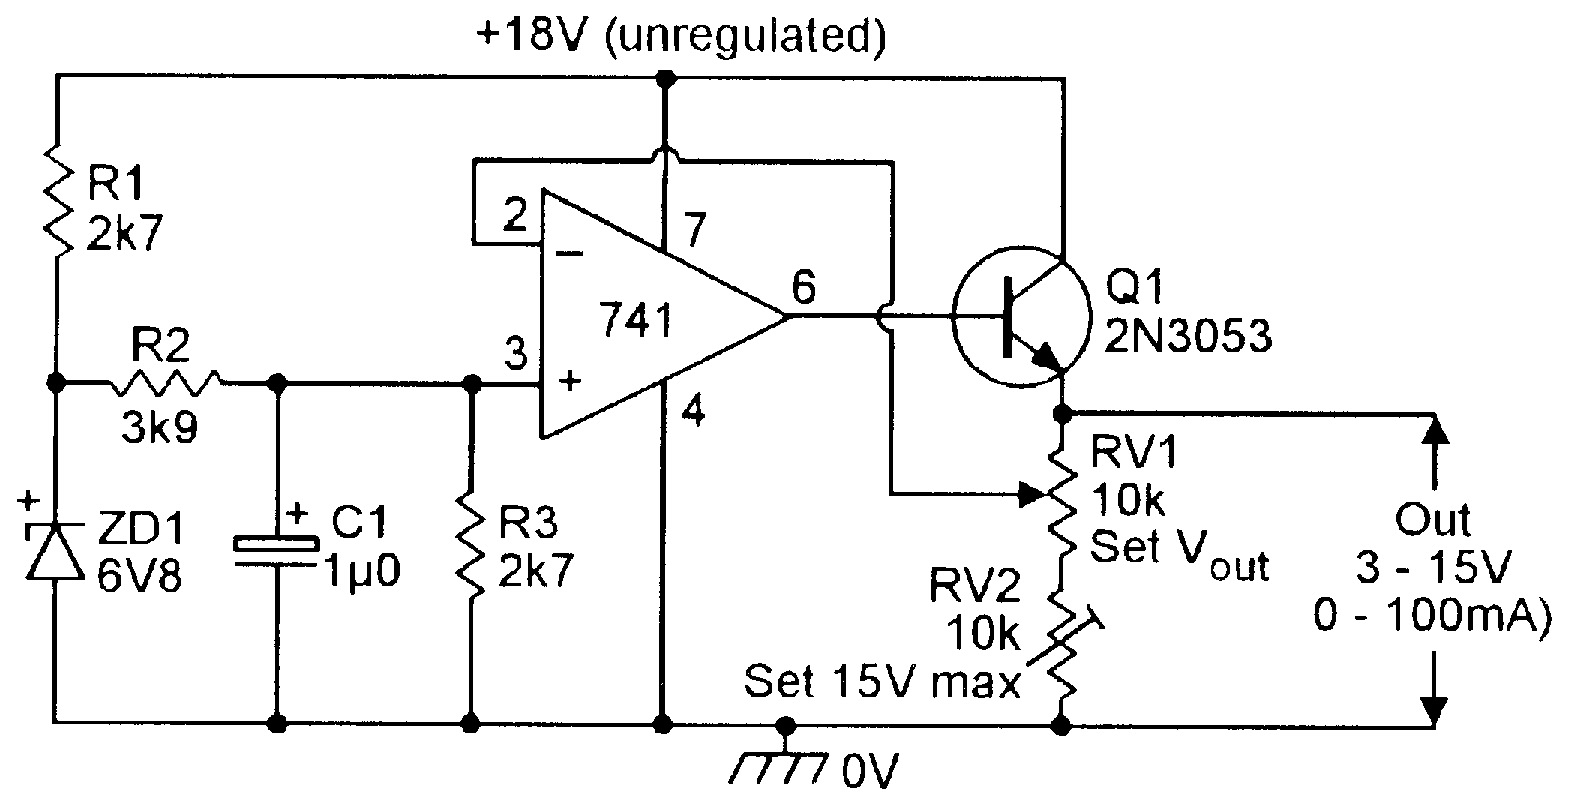 Vtx 1800c Diode Fix besides Highway Indicator Flasher Universal 10 also Suzuki Bandit 1200 Wiring Diagram together with Showthread in addition 12v Flasher Relay Wiring Diagram. on wiring diagram for motorcycle led indicators